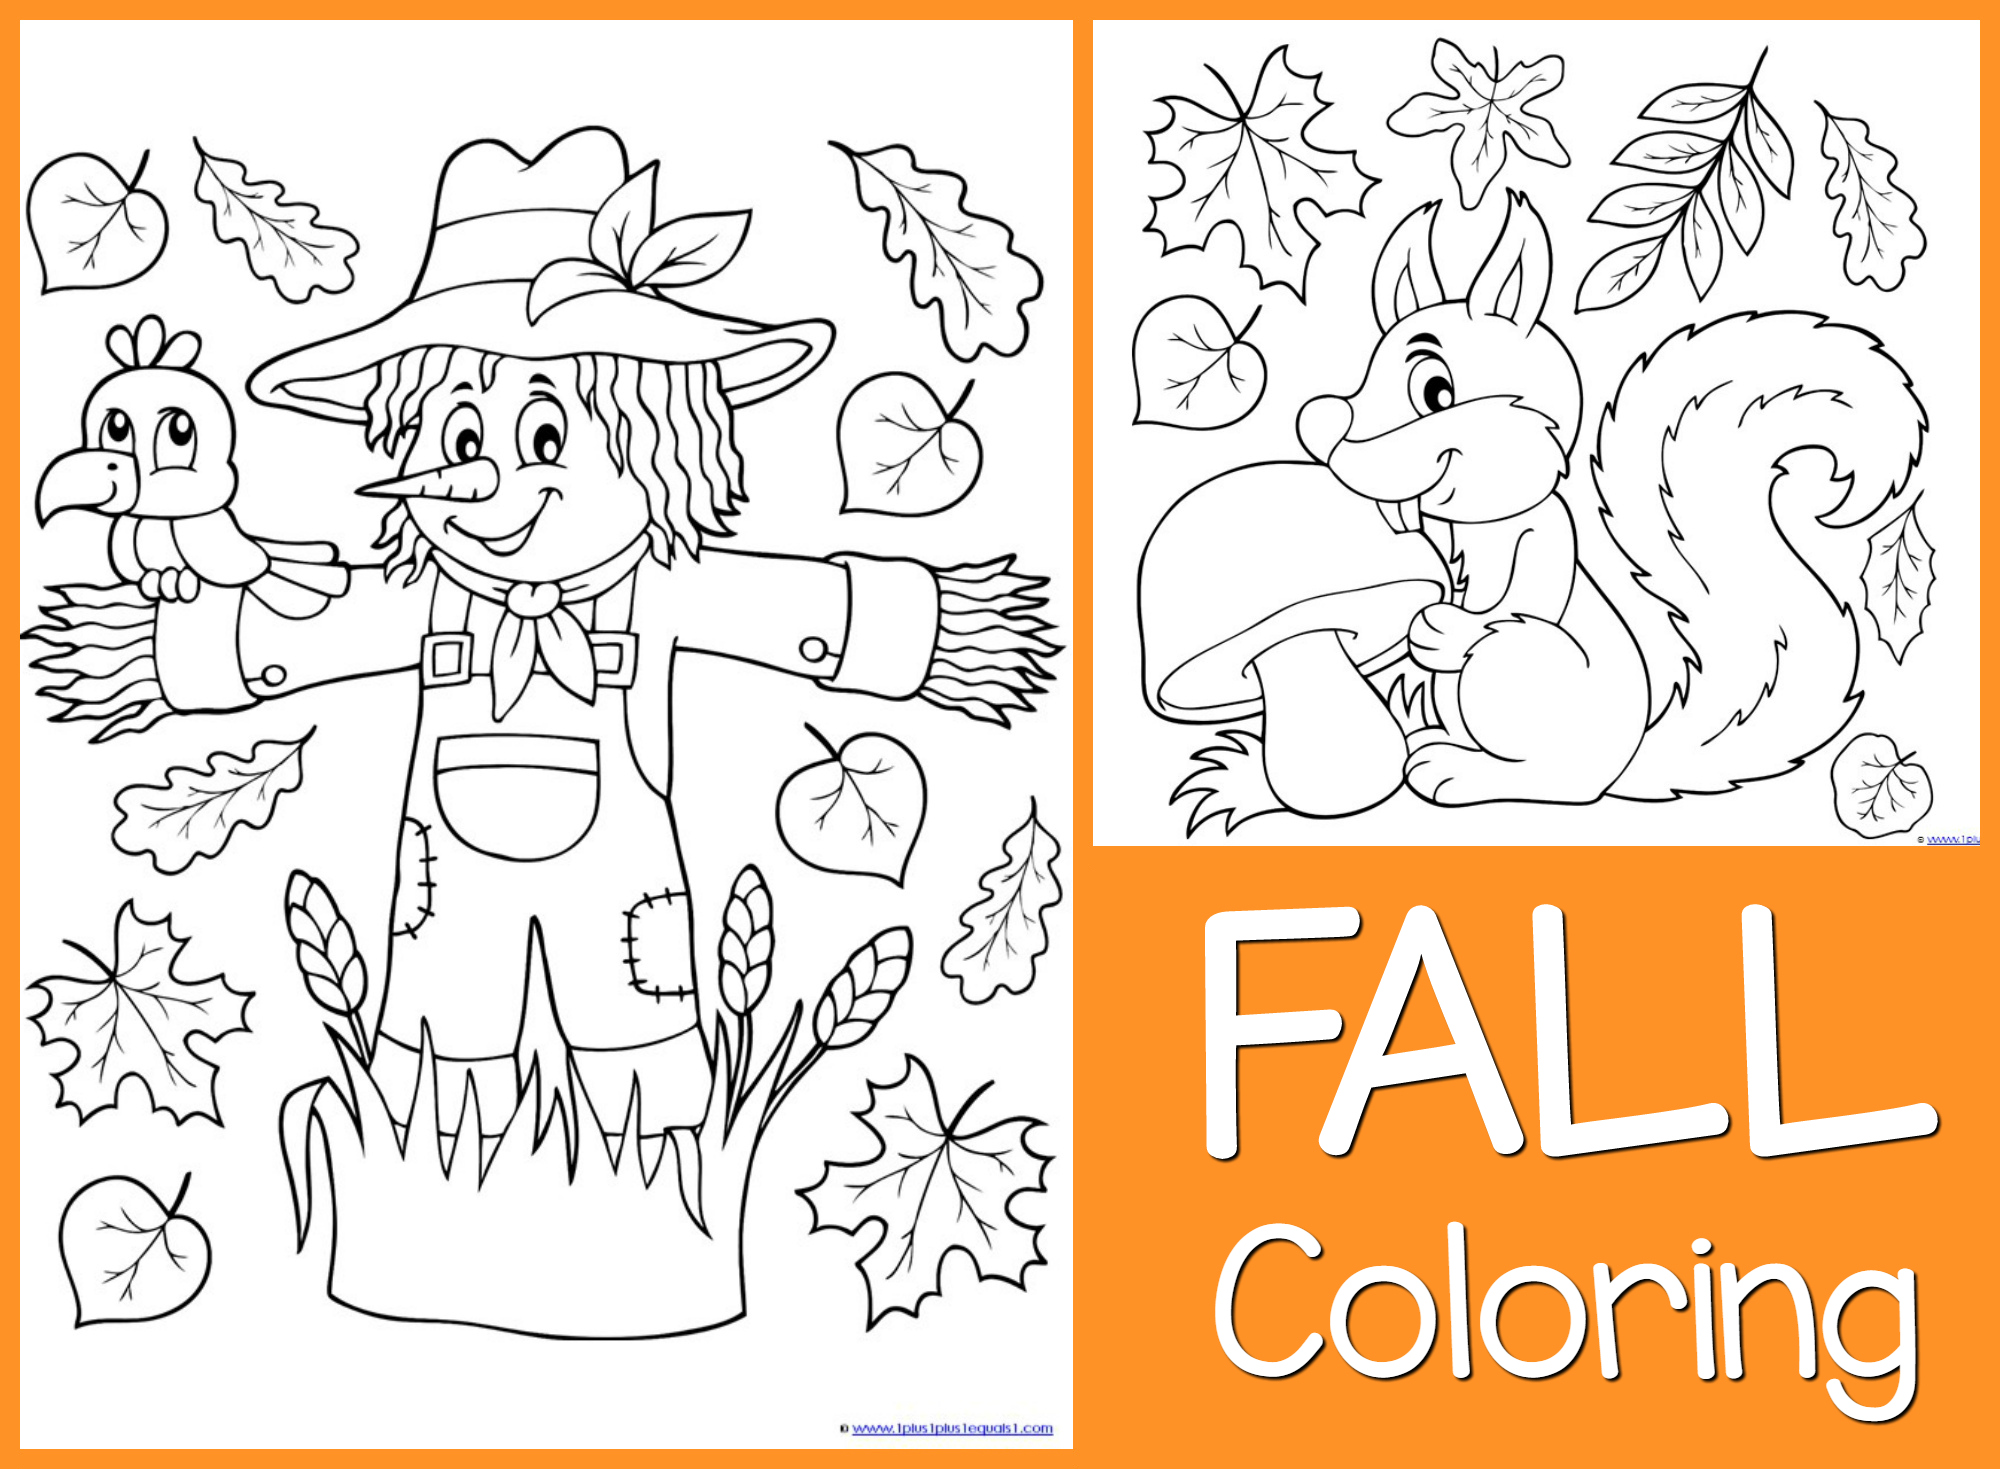 free coloring printables - Coloring Pages Fall Printable